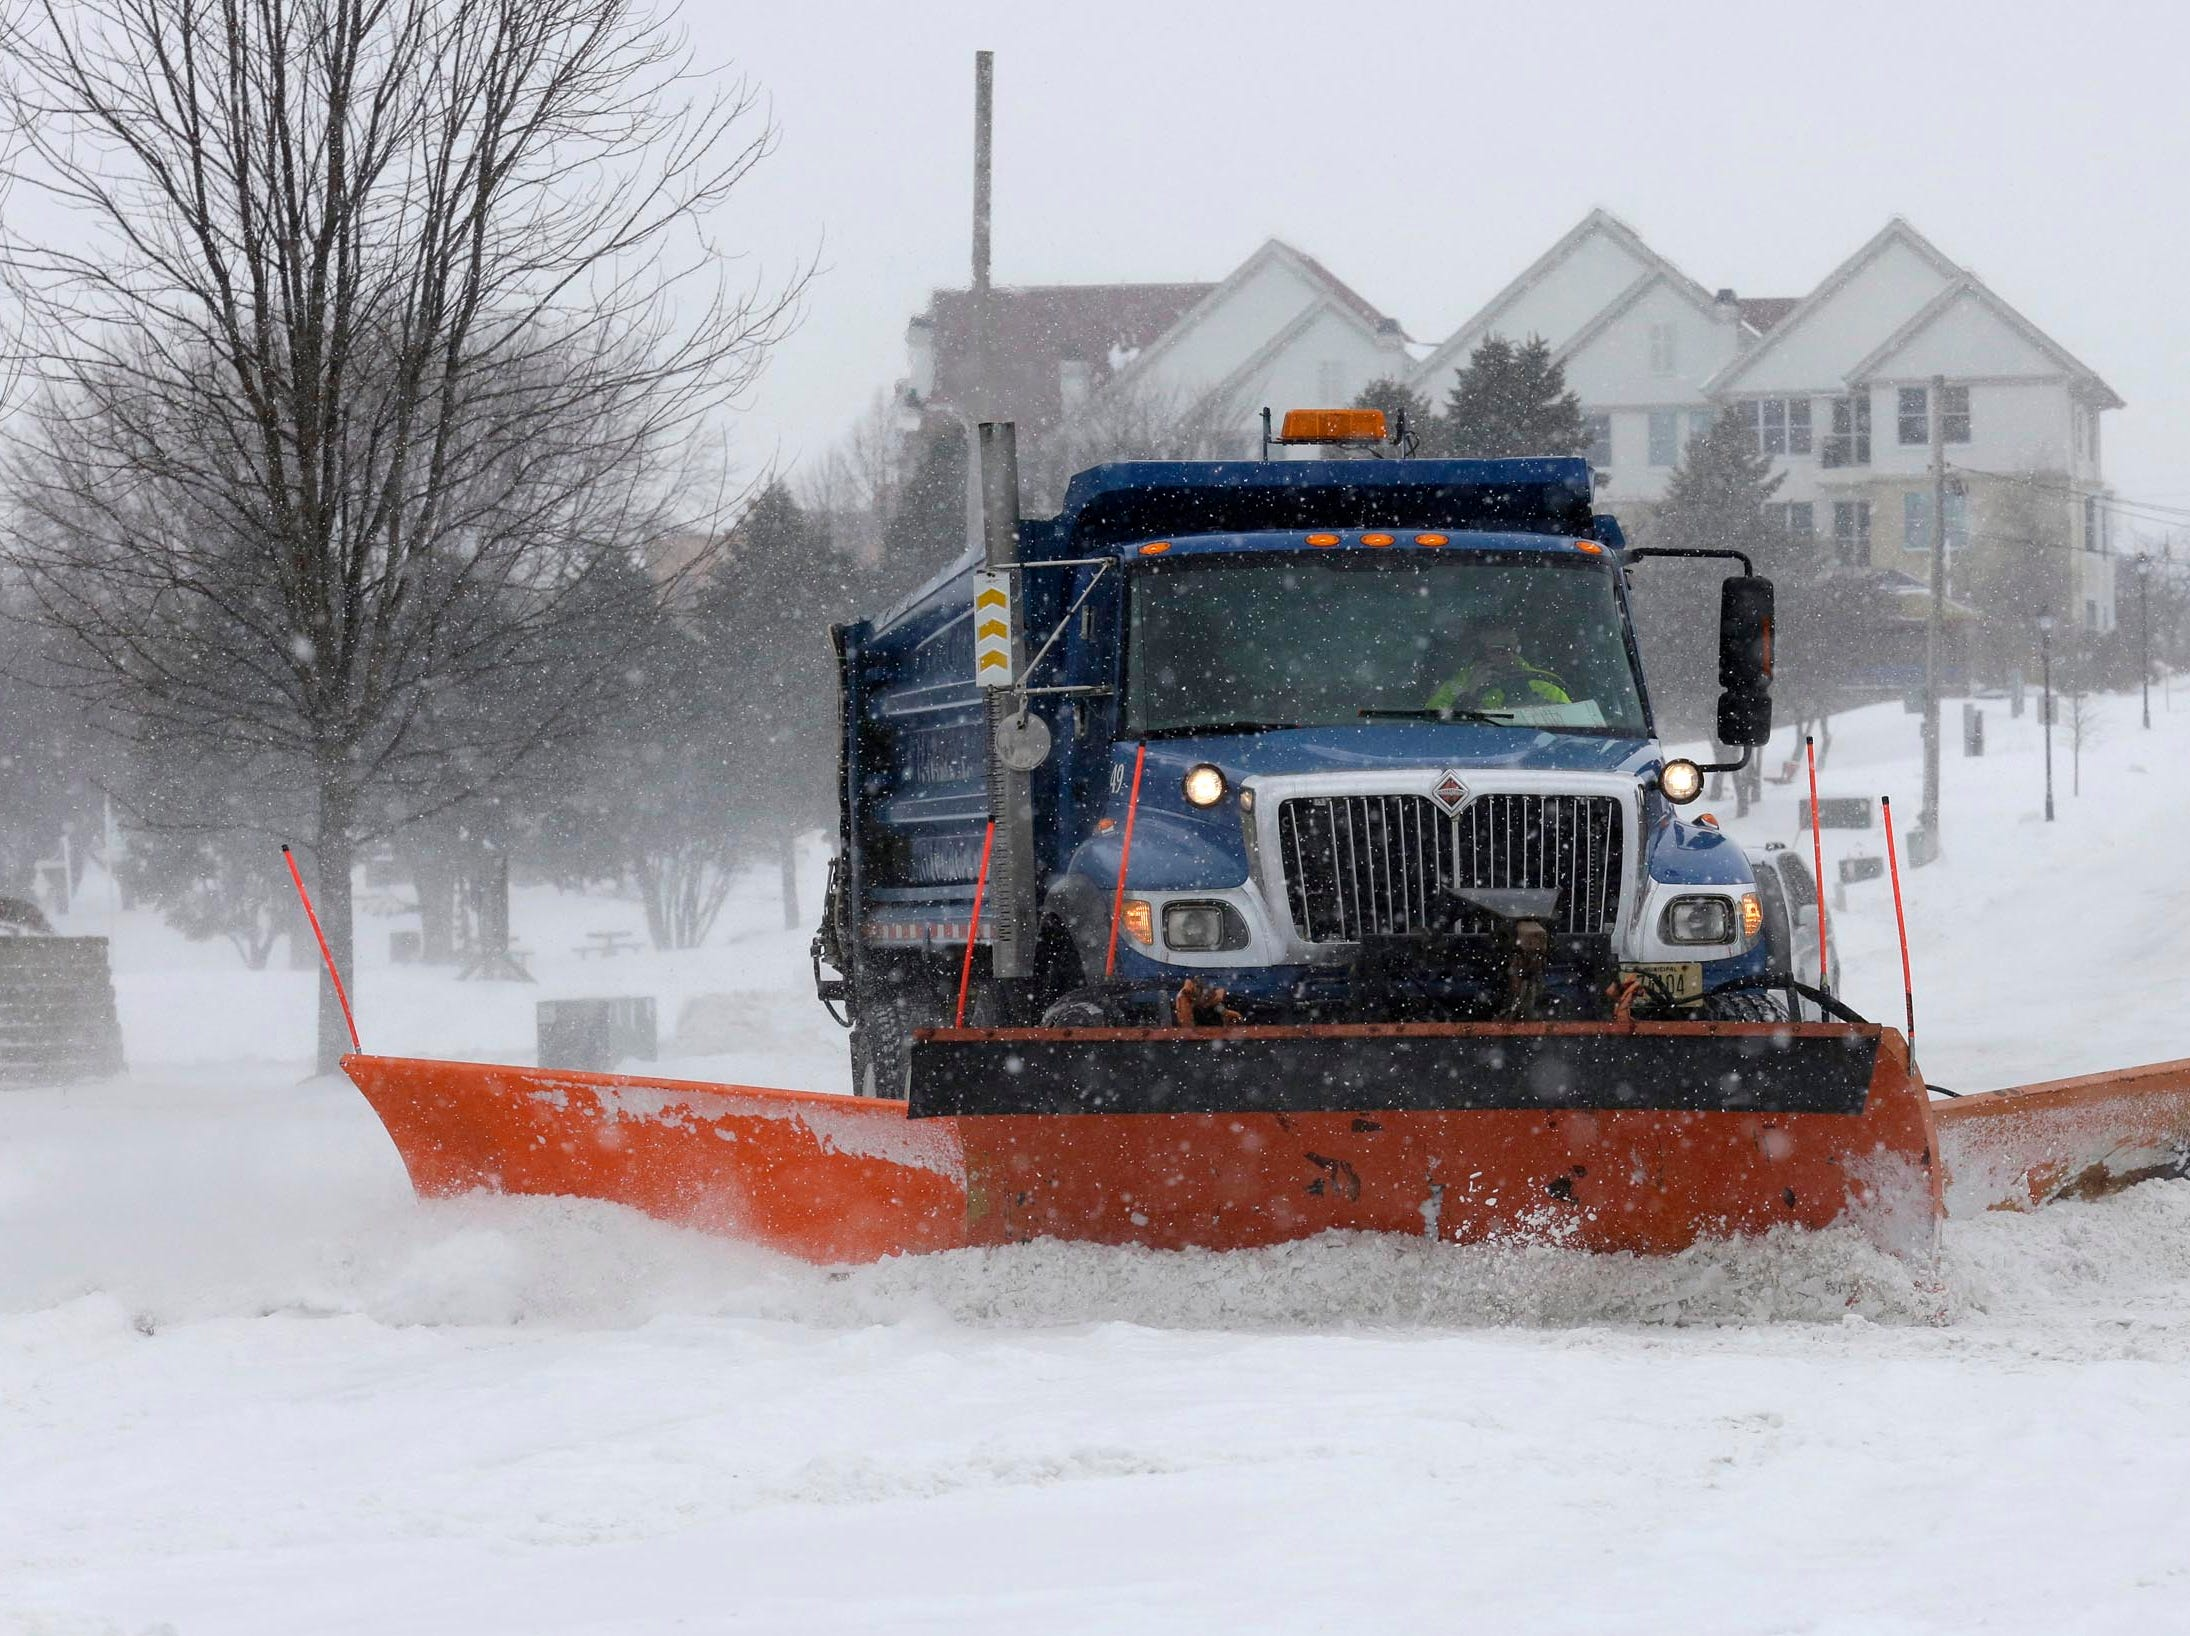 A City of Sheboygan snow plow corners on to Broughton Drive off Pennsylvania Avenue, clearing the path for motorists, Monday, Jan. 28, 2019, in Sheboygan, Wis.